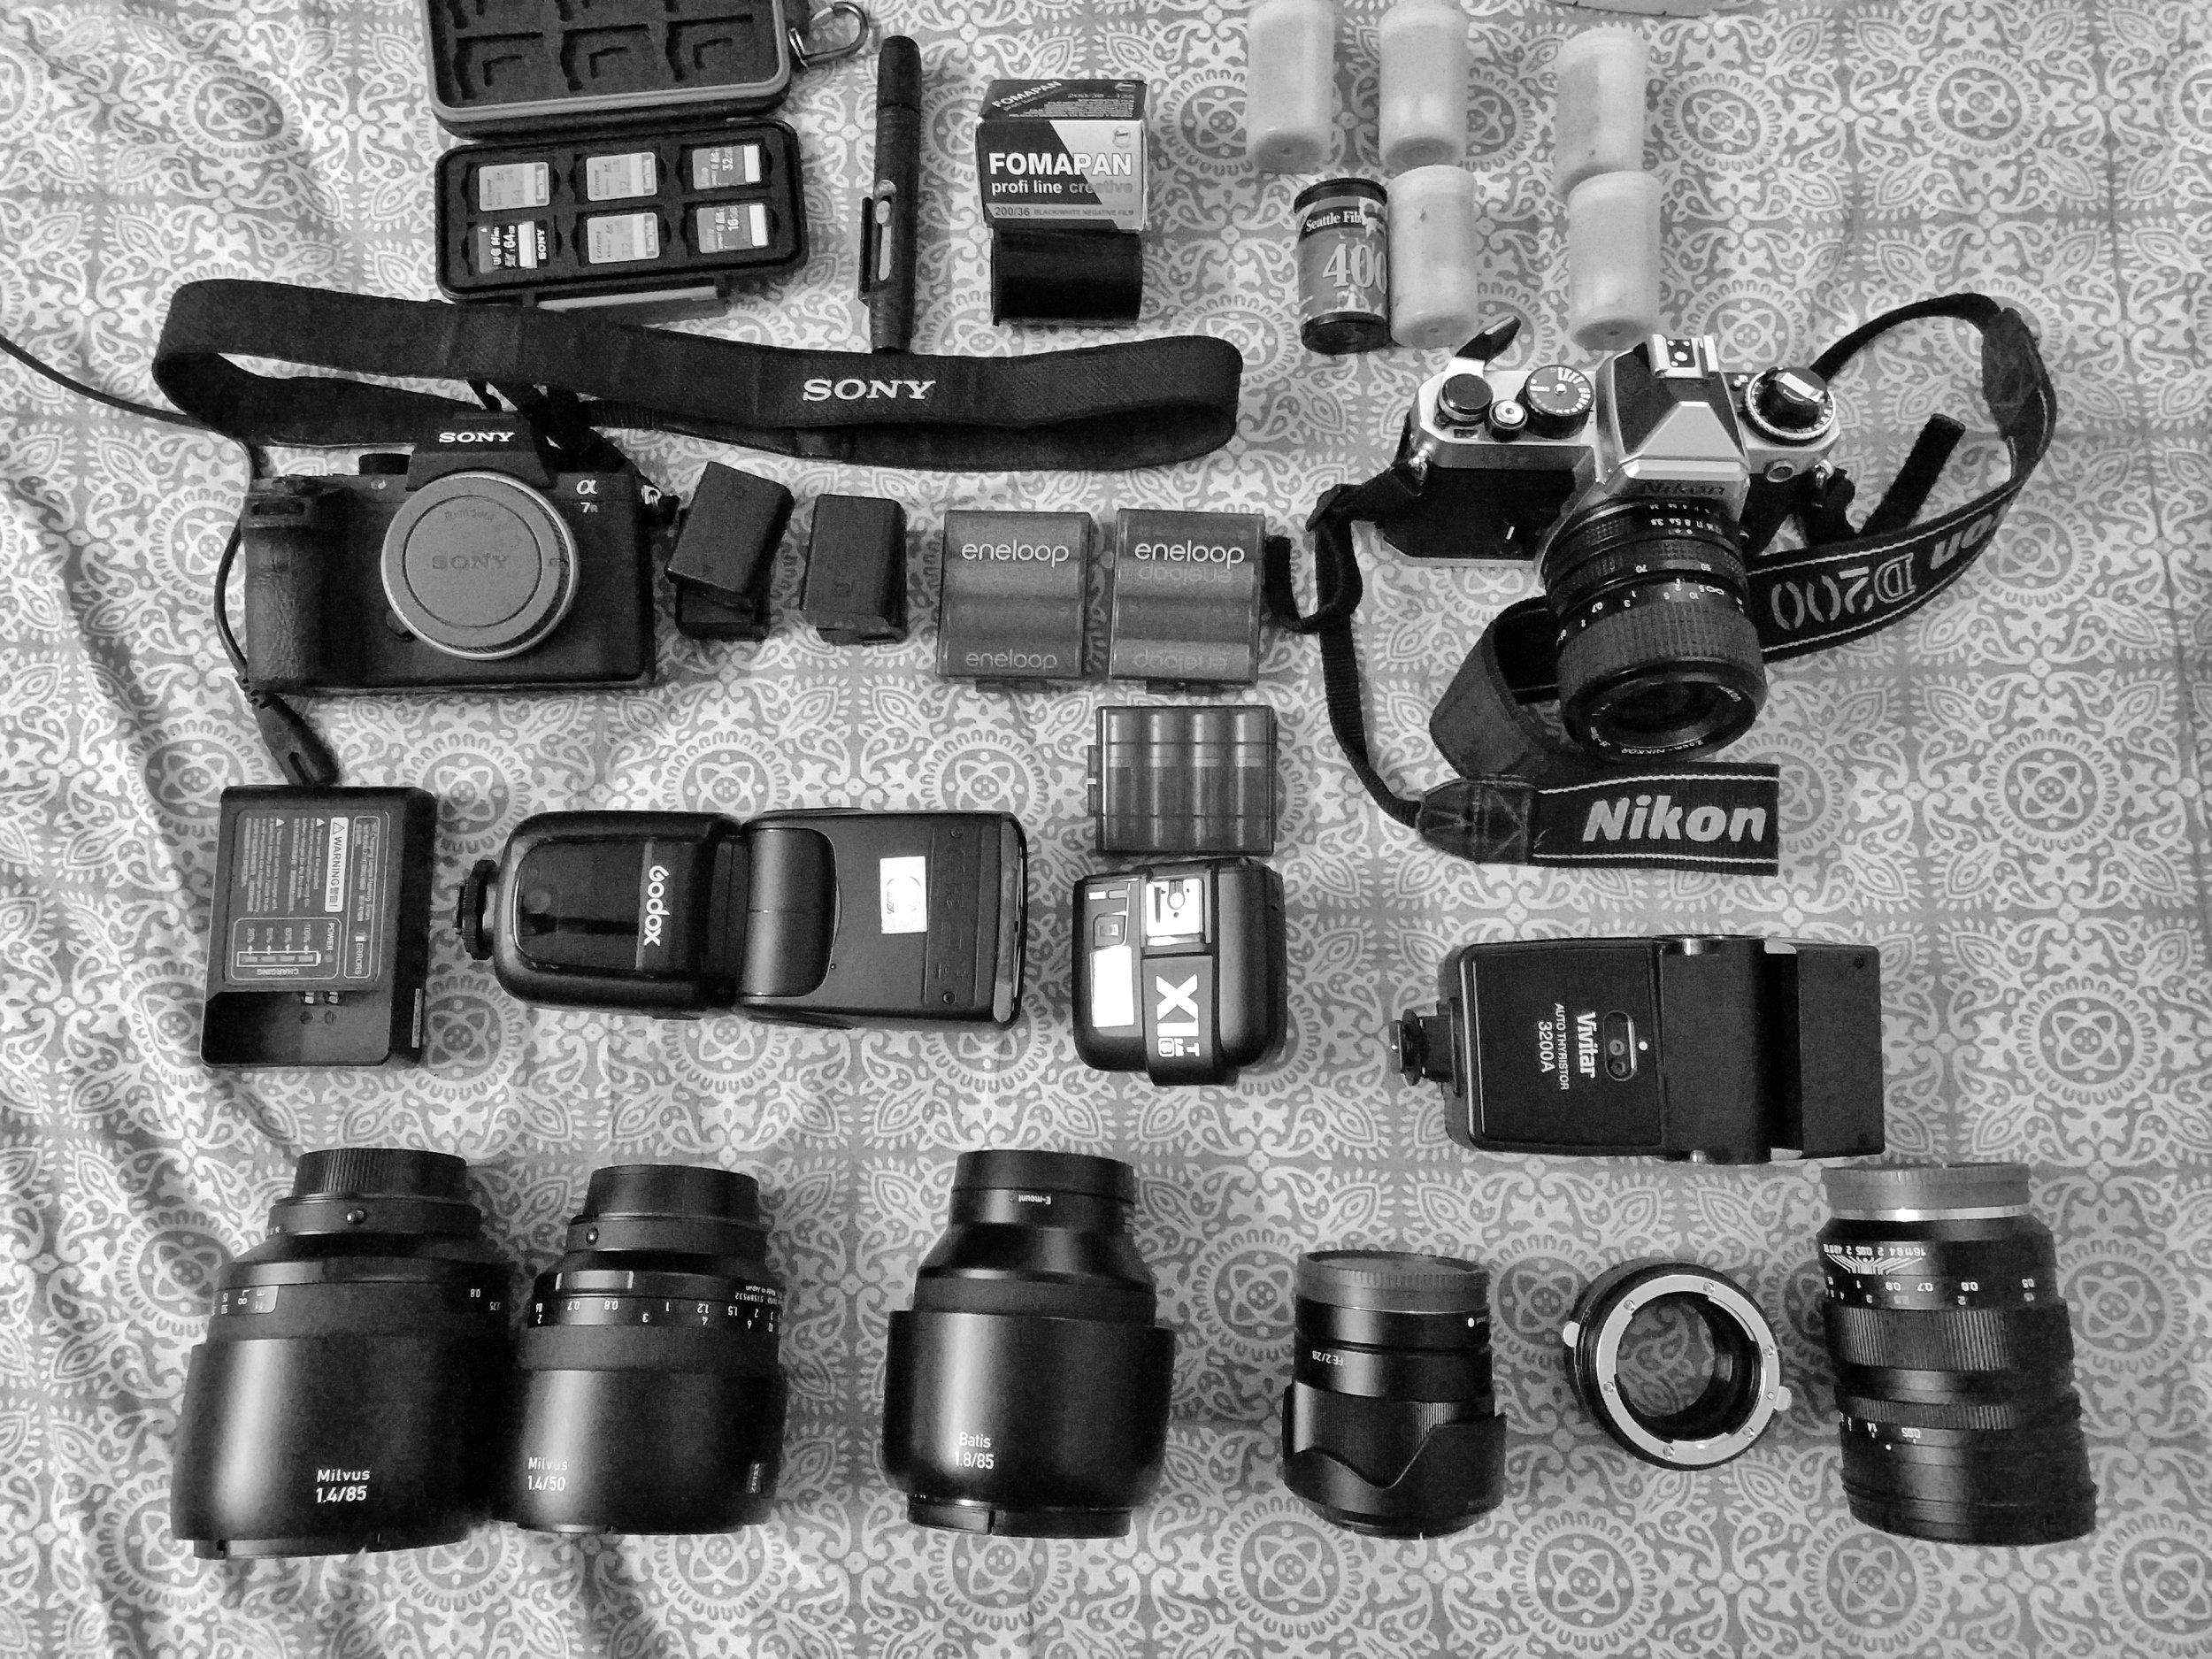 Complete set along with Sony A7R ii